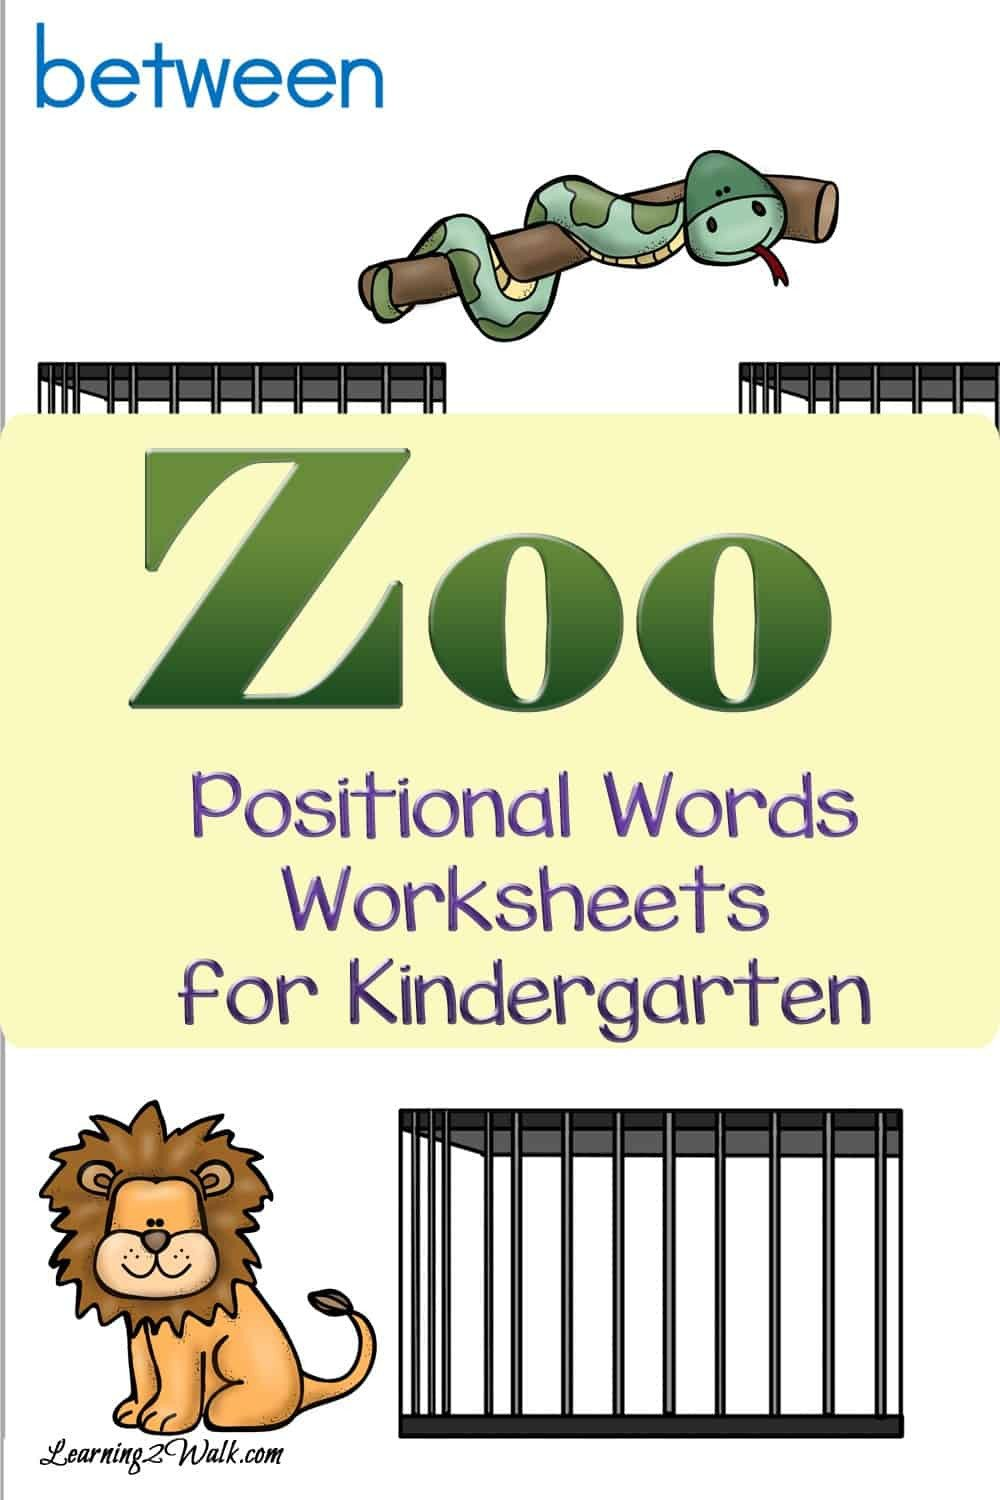 Positional Word Worksheets Zoo Positional Words Worksheets for Kindergarten